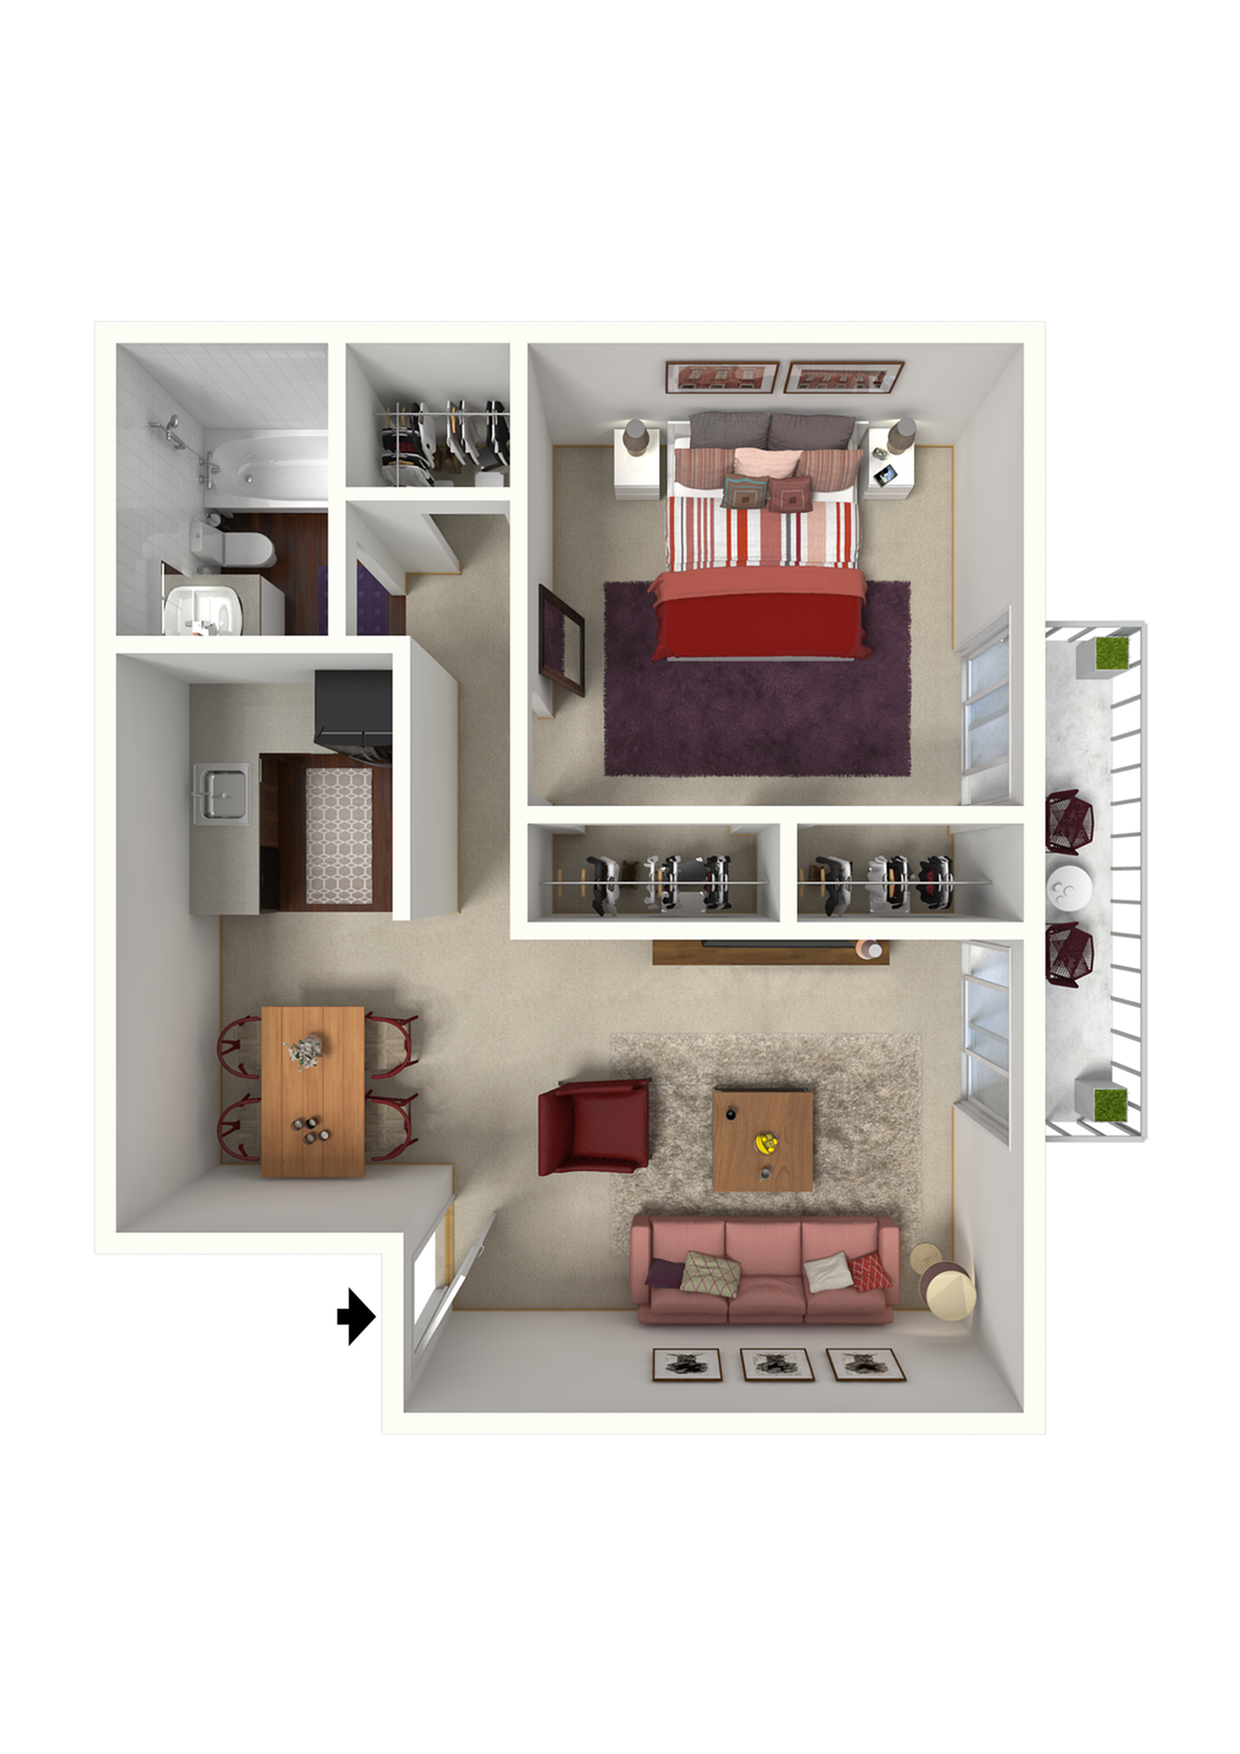 The Belle - 1x1 - 640 SqFt.